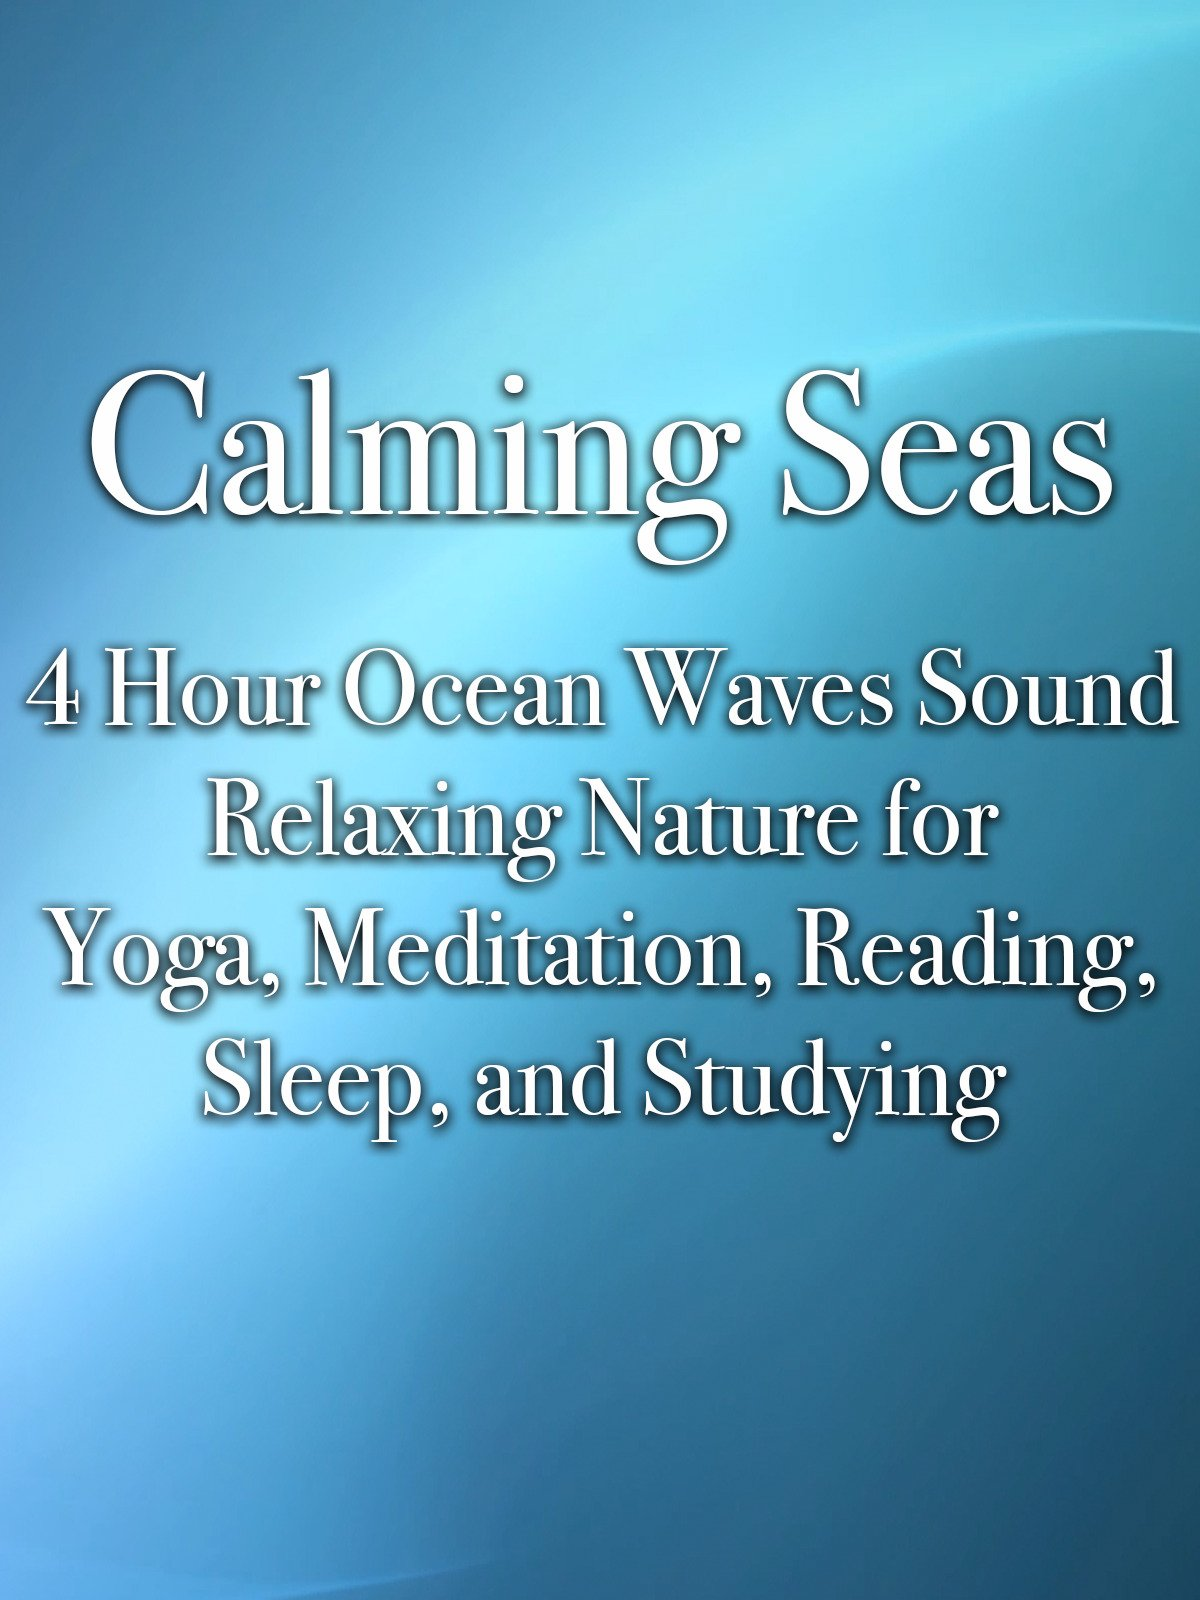 Calming Seas 4 Hour Ocean Waves Sound Relaxing Nature for Yoga, Meditation, Reading, Sleep, and Studying